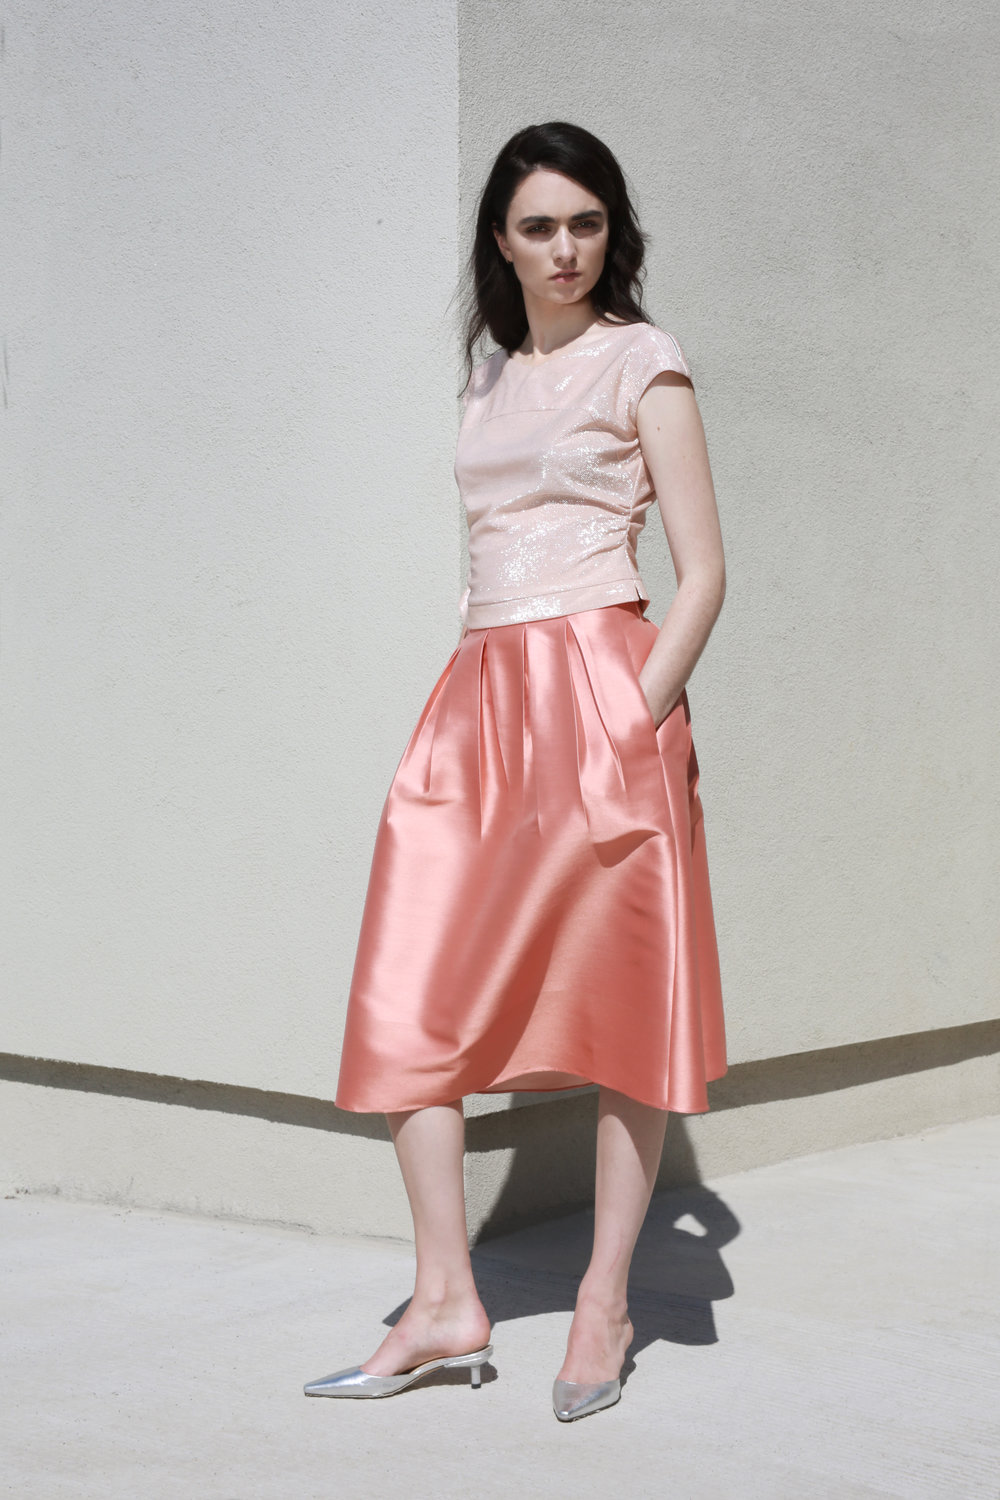 Evelyn Top in Nude Shine €148.00  Poppy Skirt in Apricot €256.00